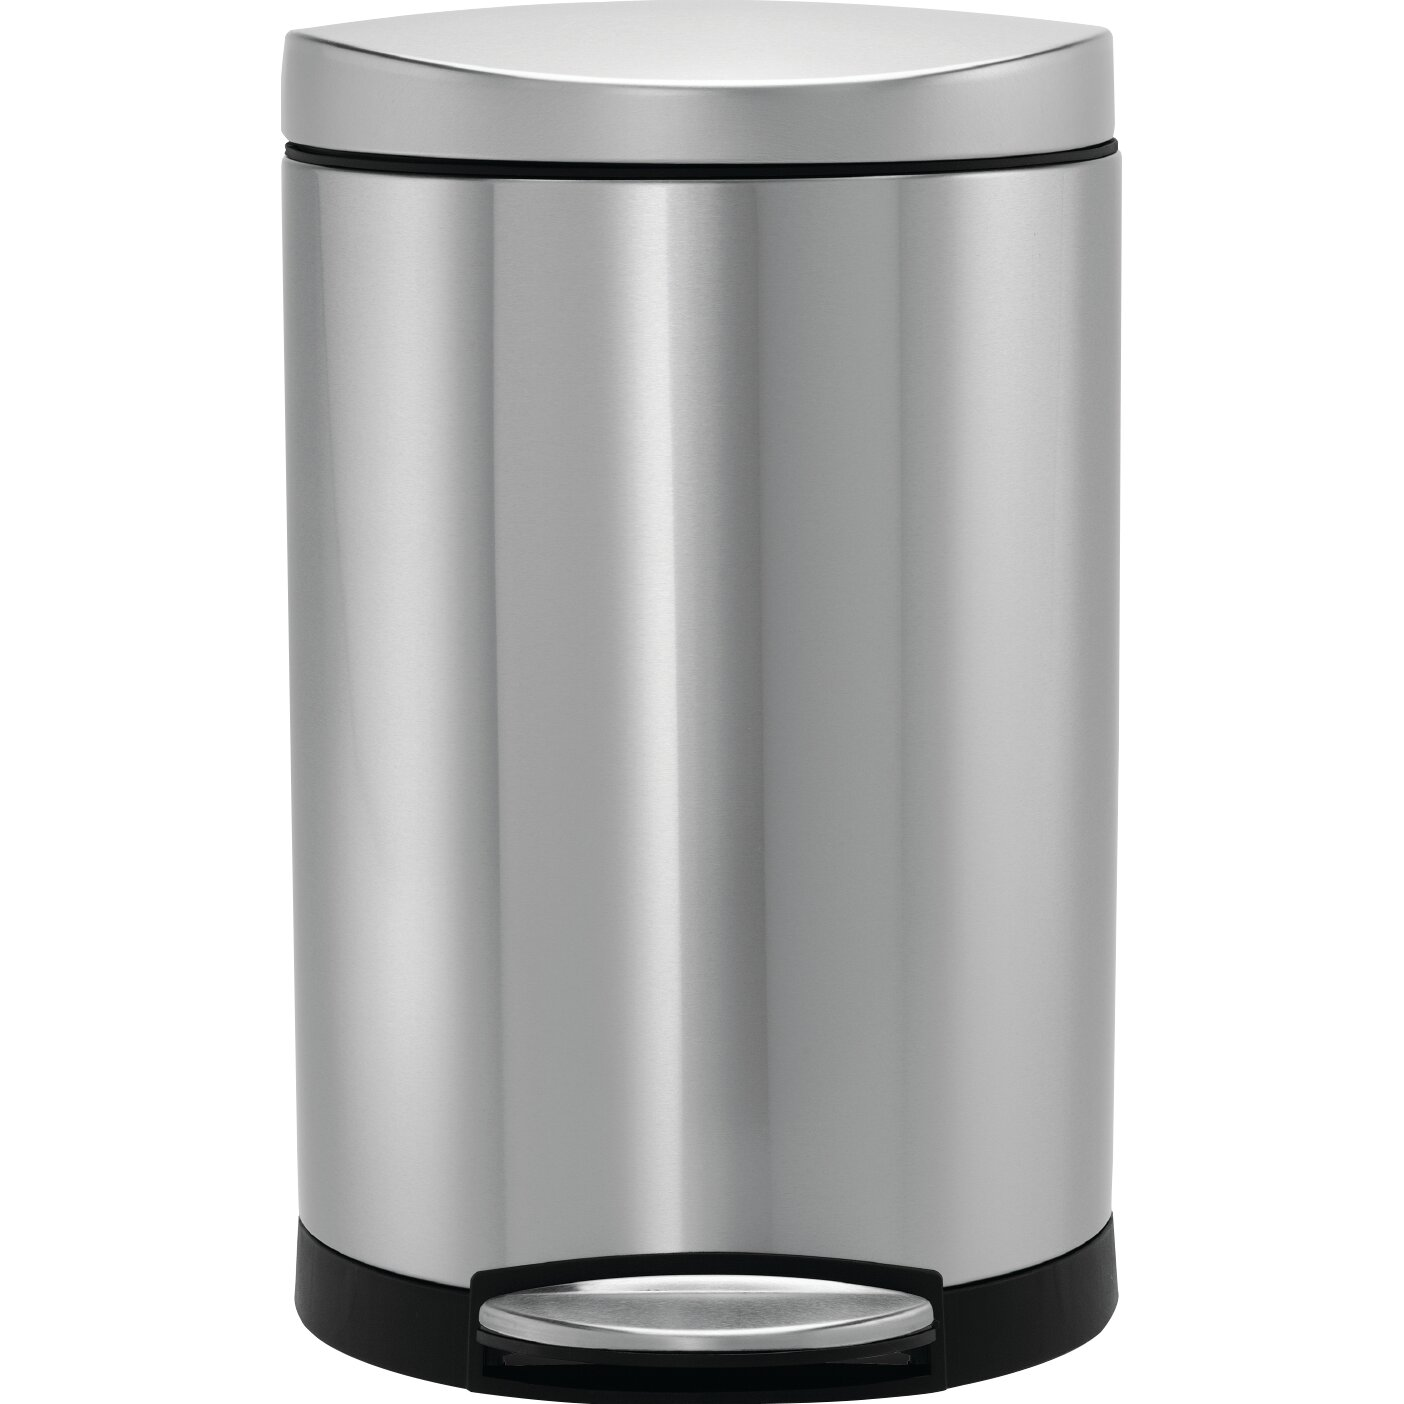 simplehuman 2 6 gal semi round step trash can in stainless steel reviews wayfair. Black Bedroom Furniture Sets. Home Design Ideas